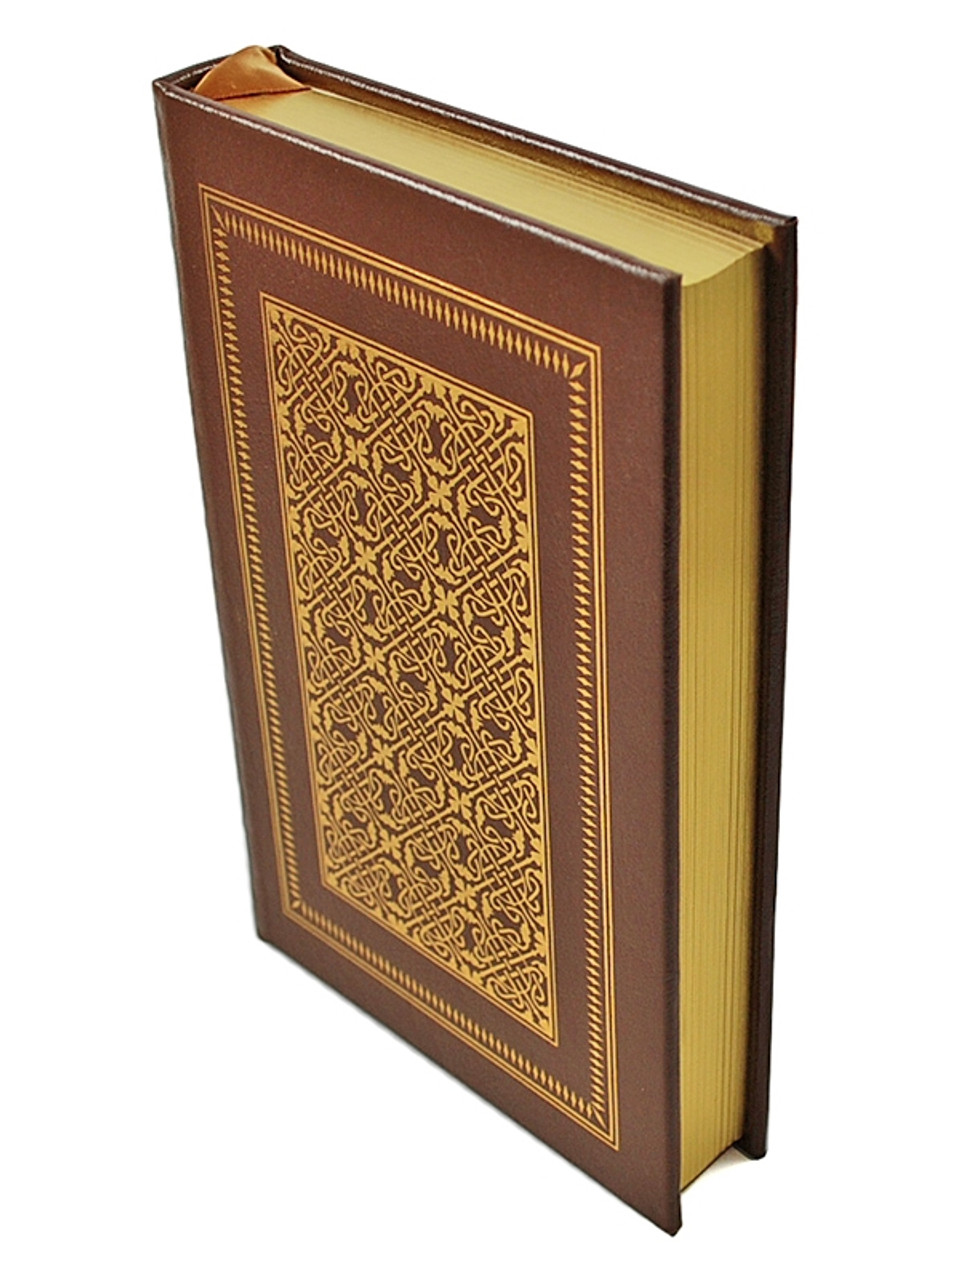 """Easton Press, Sir Arthur Conan Doyle """"The Land of Mist and Other Stories"""" Leather Bound Collector's Edition"""